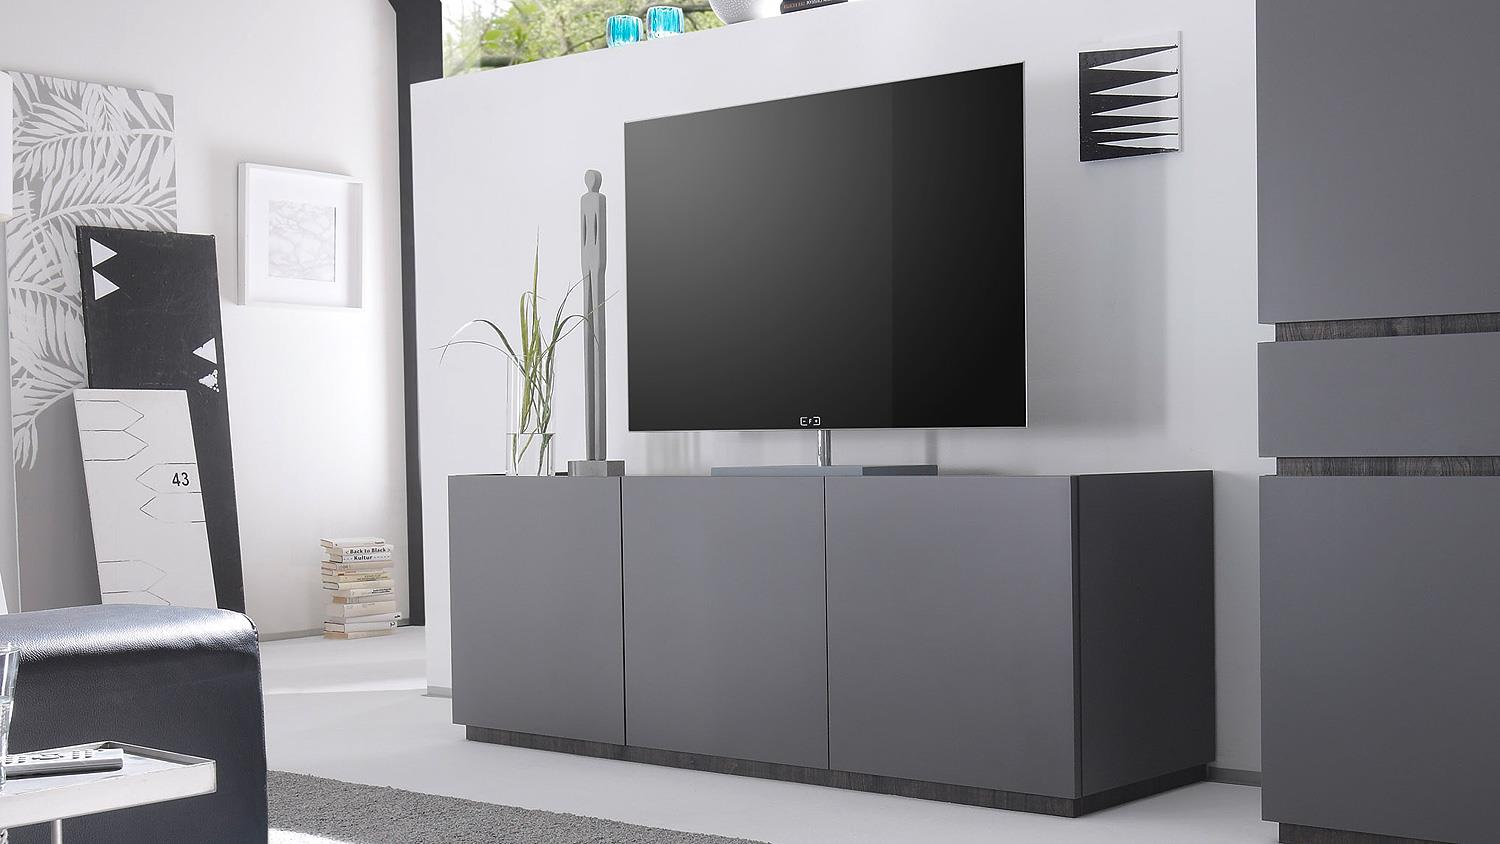 fernsehschrank geschlossen modern ambiznes 28 images. Black Bedroom Furniture Sets. Home Design Ideas